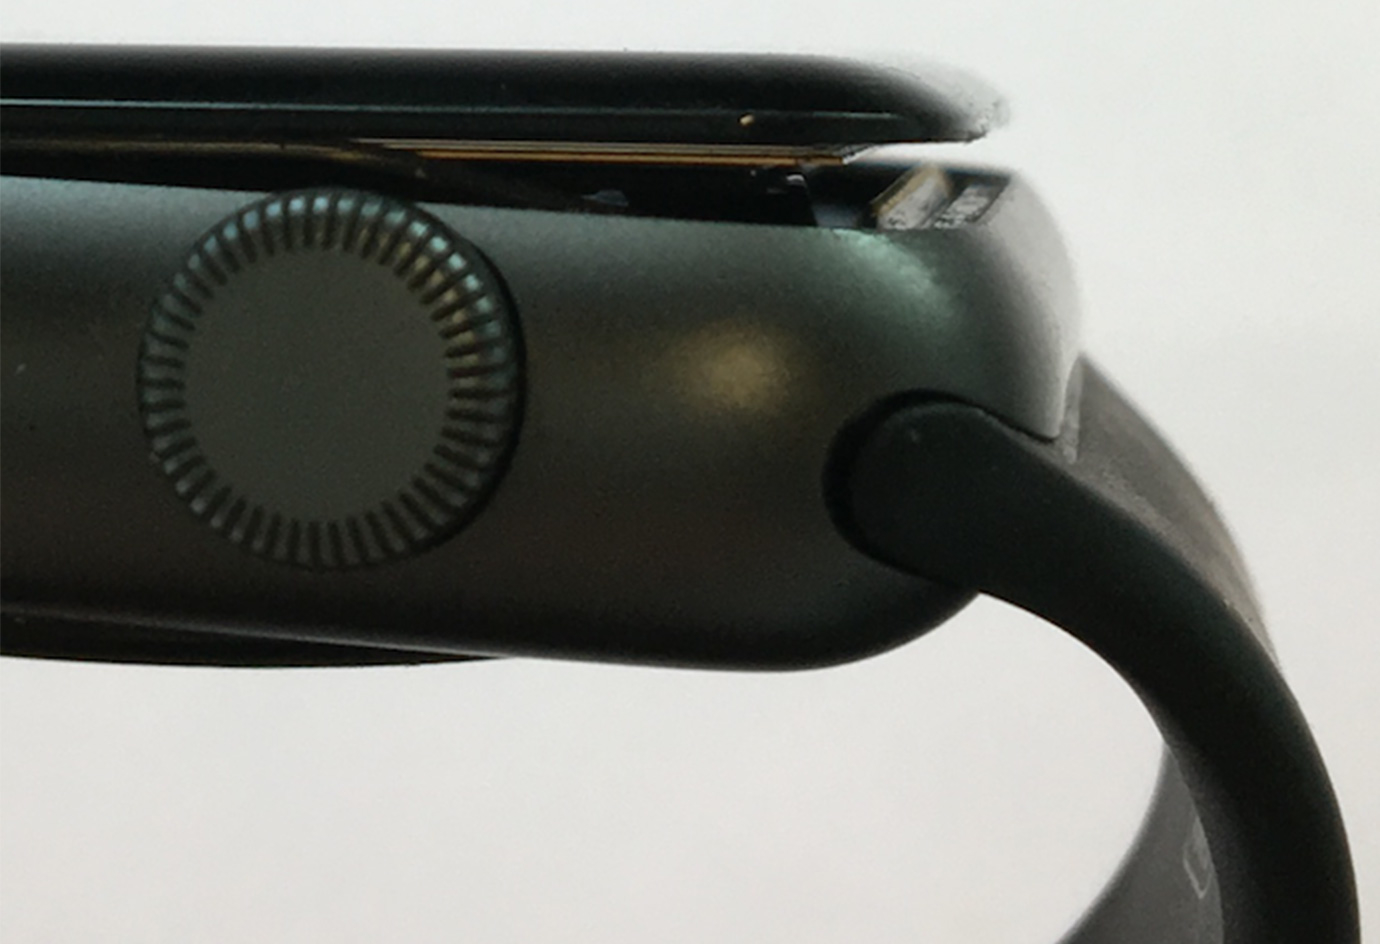 apple-watch-batt-issue